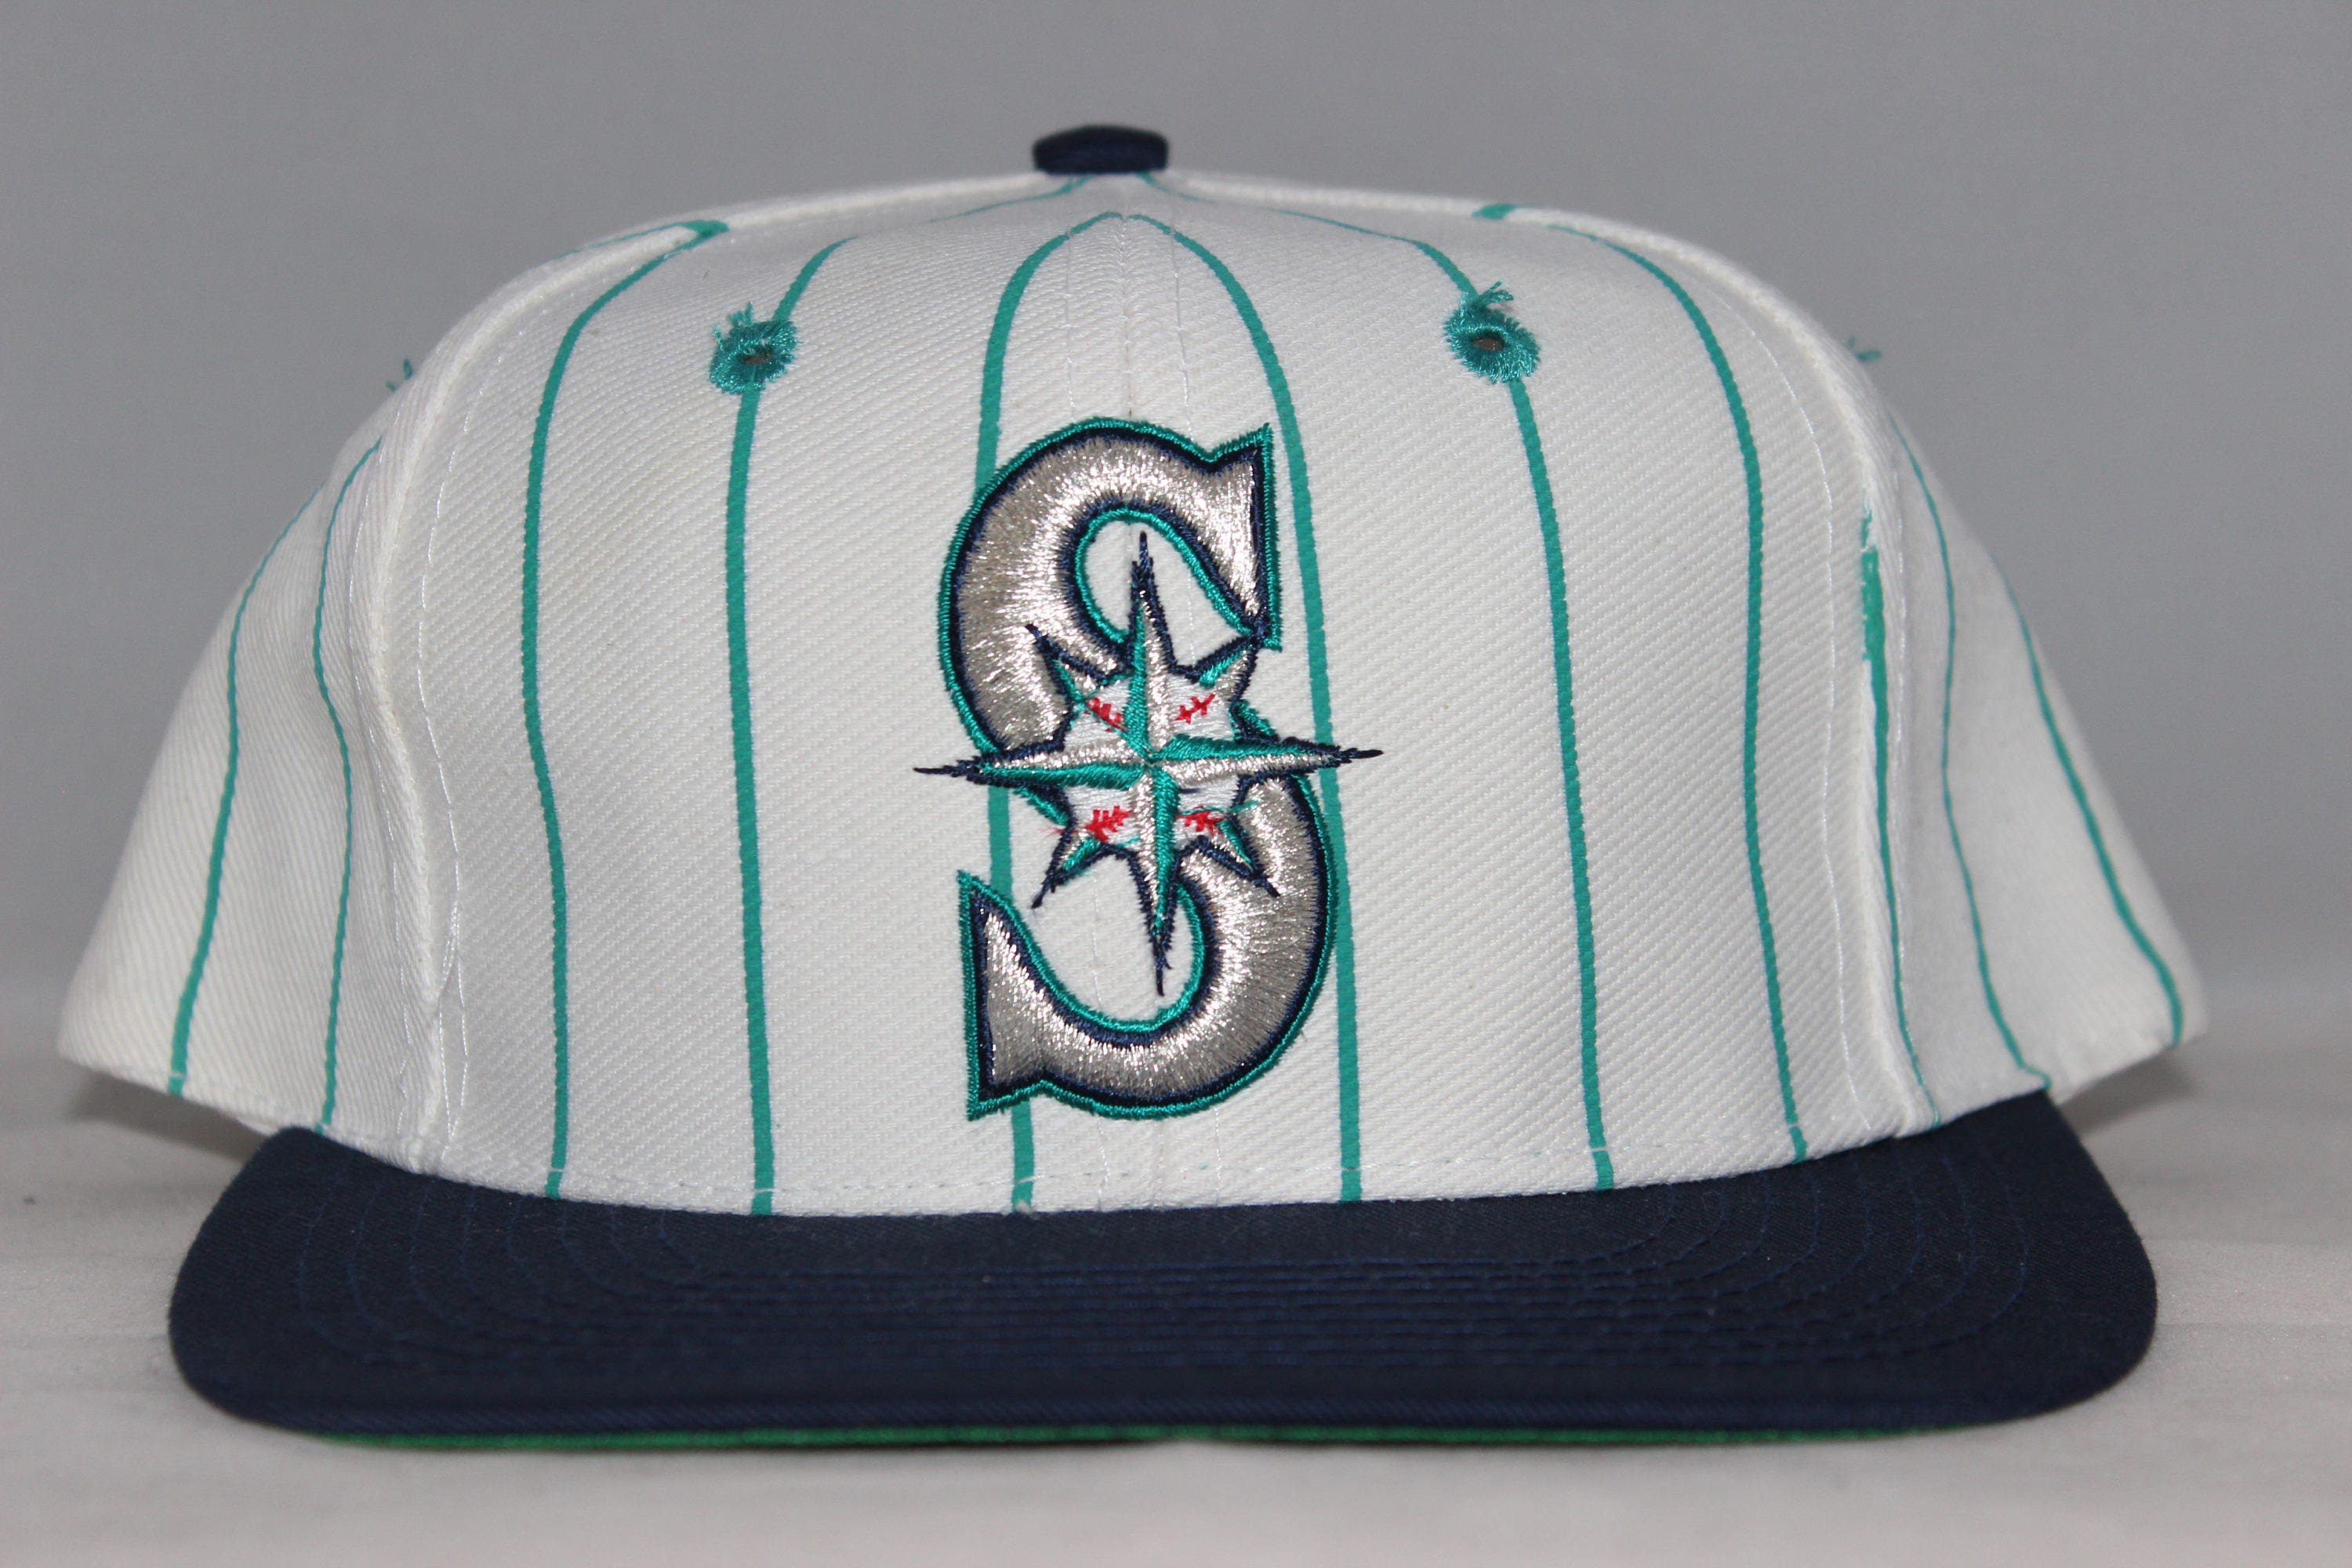 Vintage Seattle Mariners MLB Snapback Hat 8bd805e8a937